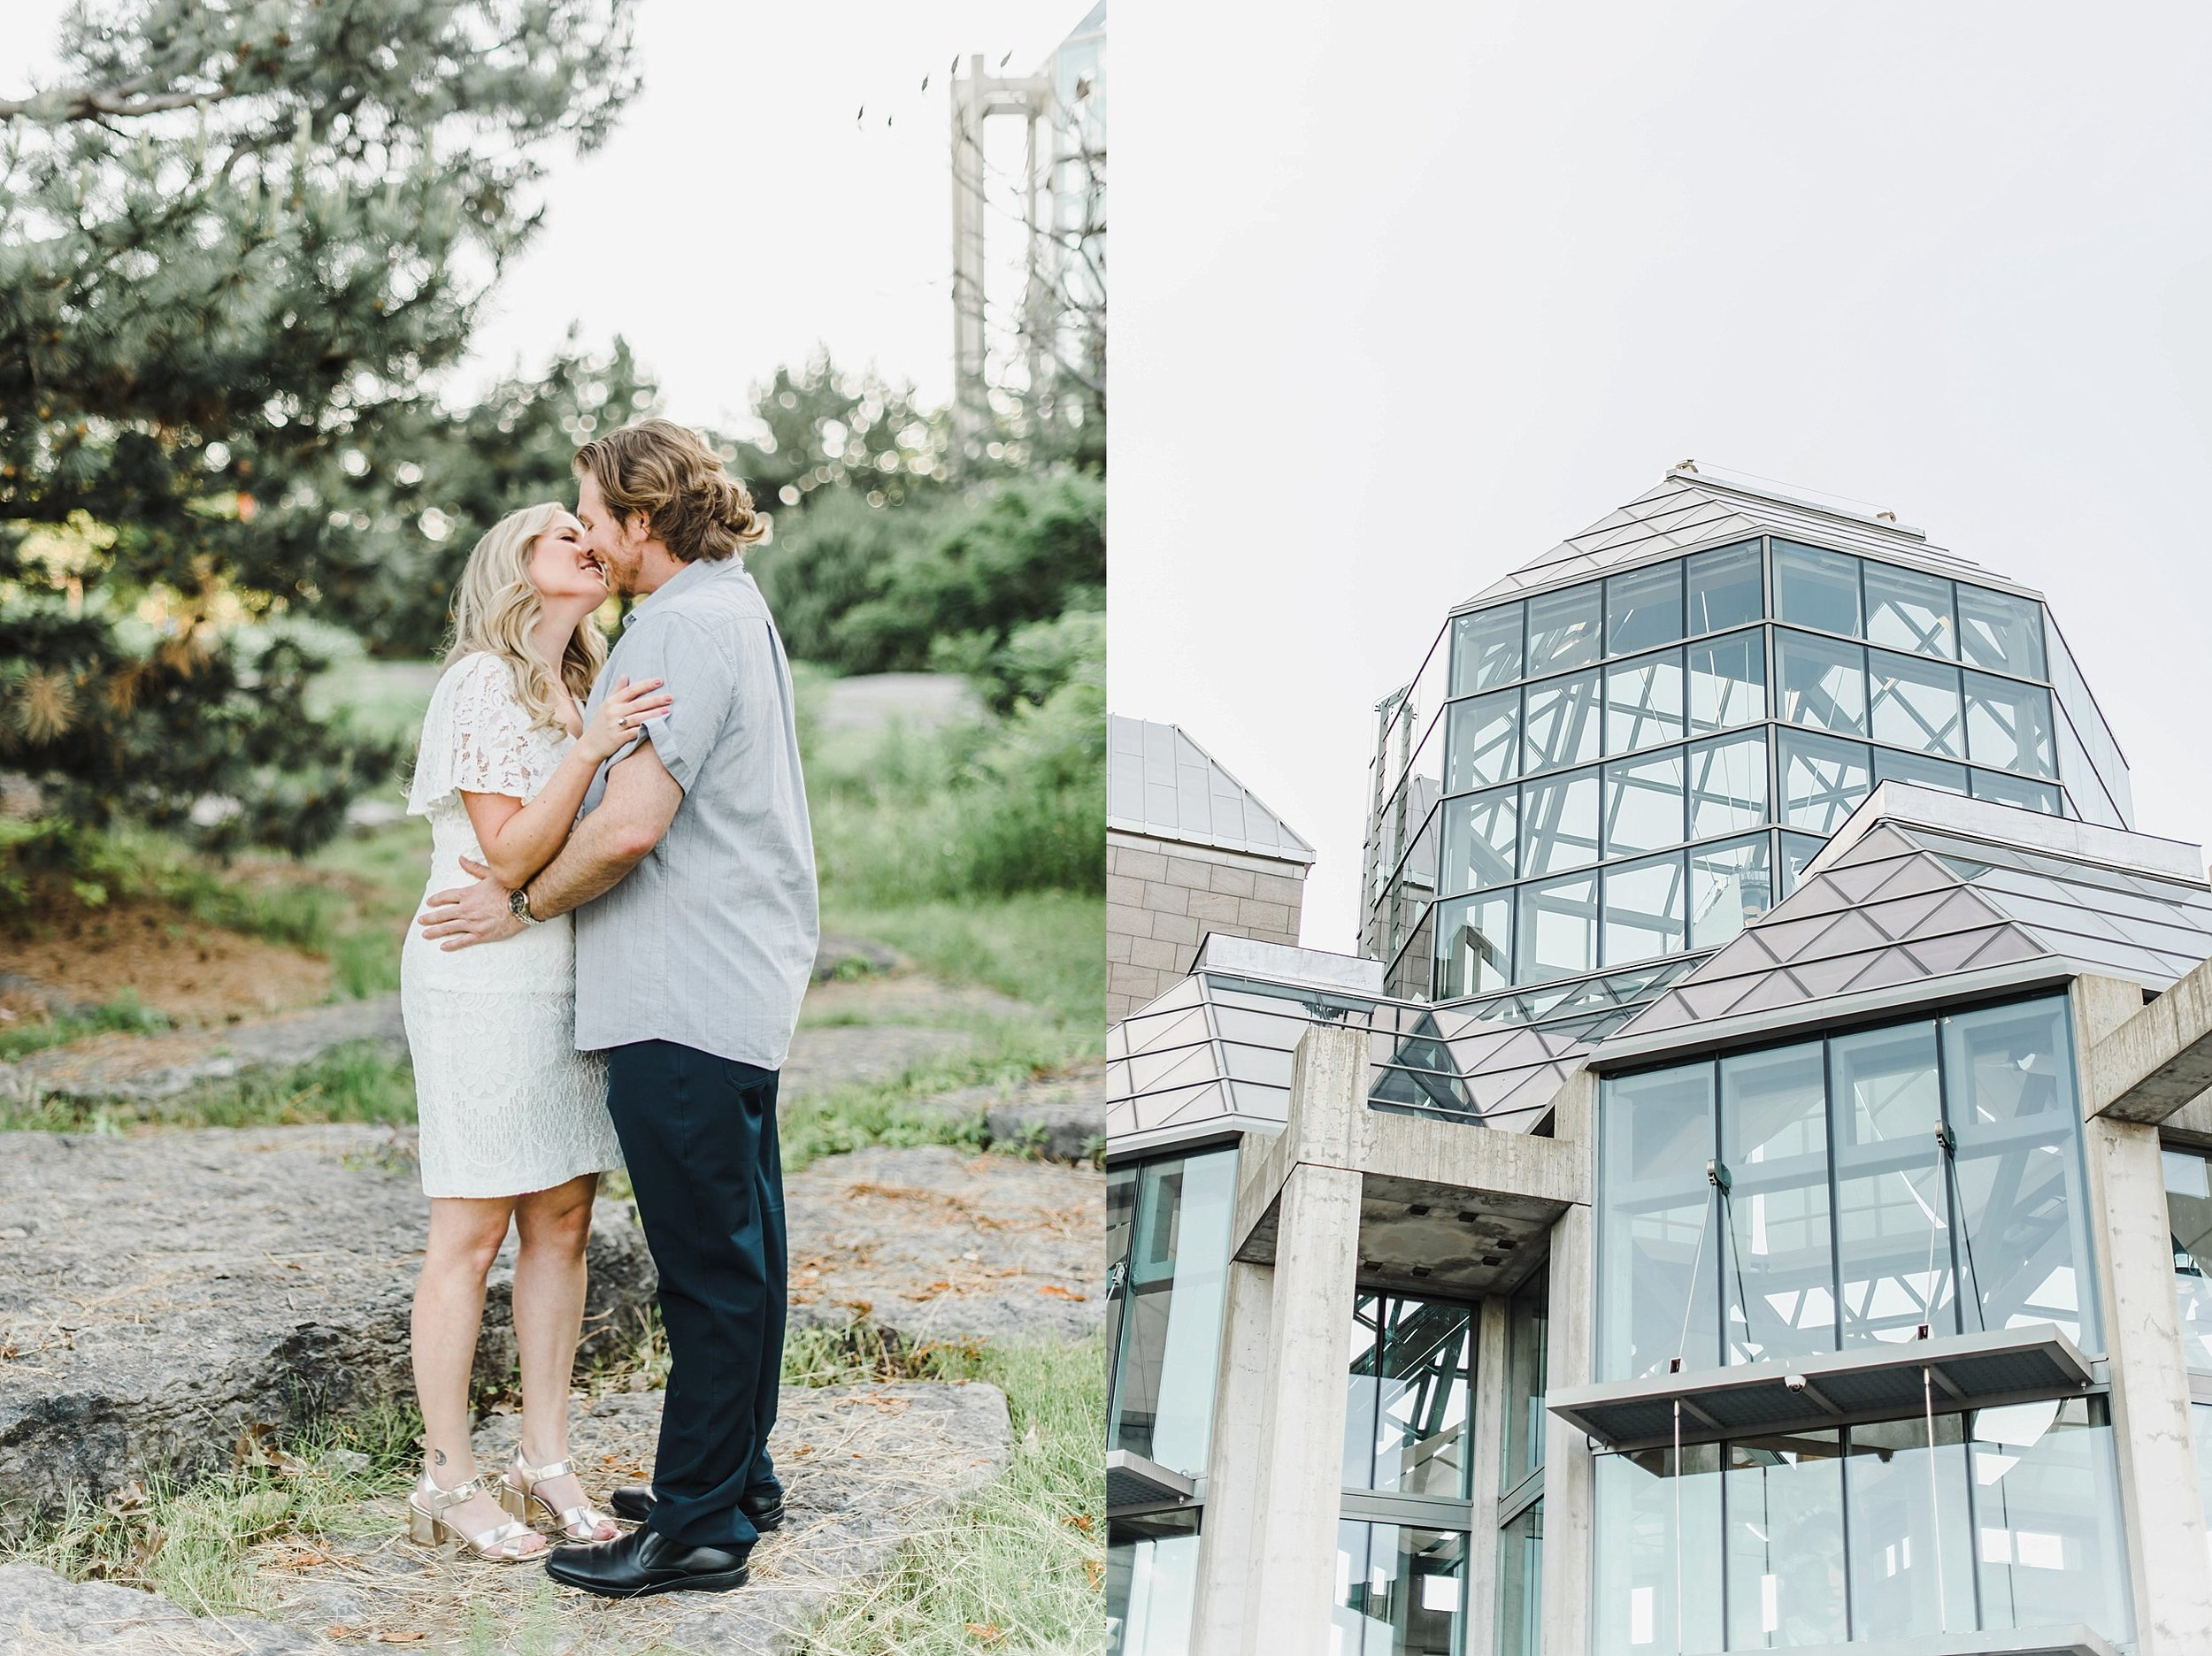 light airy indie fine art ottawa wedding photographer | Ali and Batoul Photography_0776.jpg